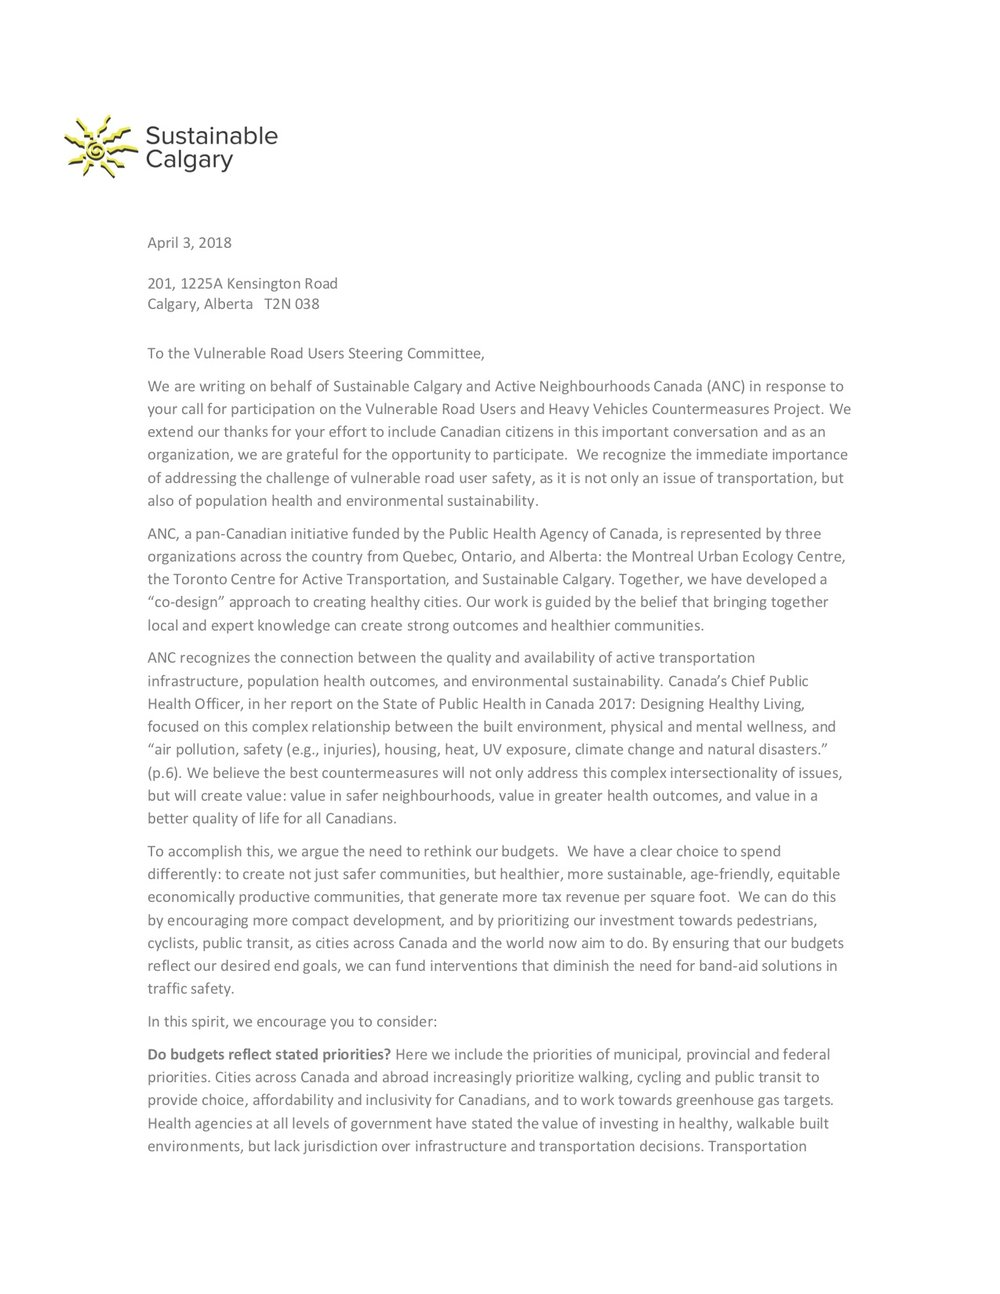 Sustainable Calgary - April 2018 Letter to VRU Steering Committee.jpg